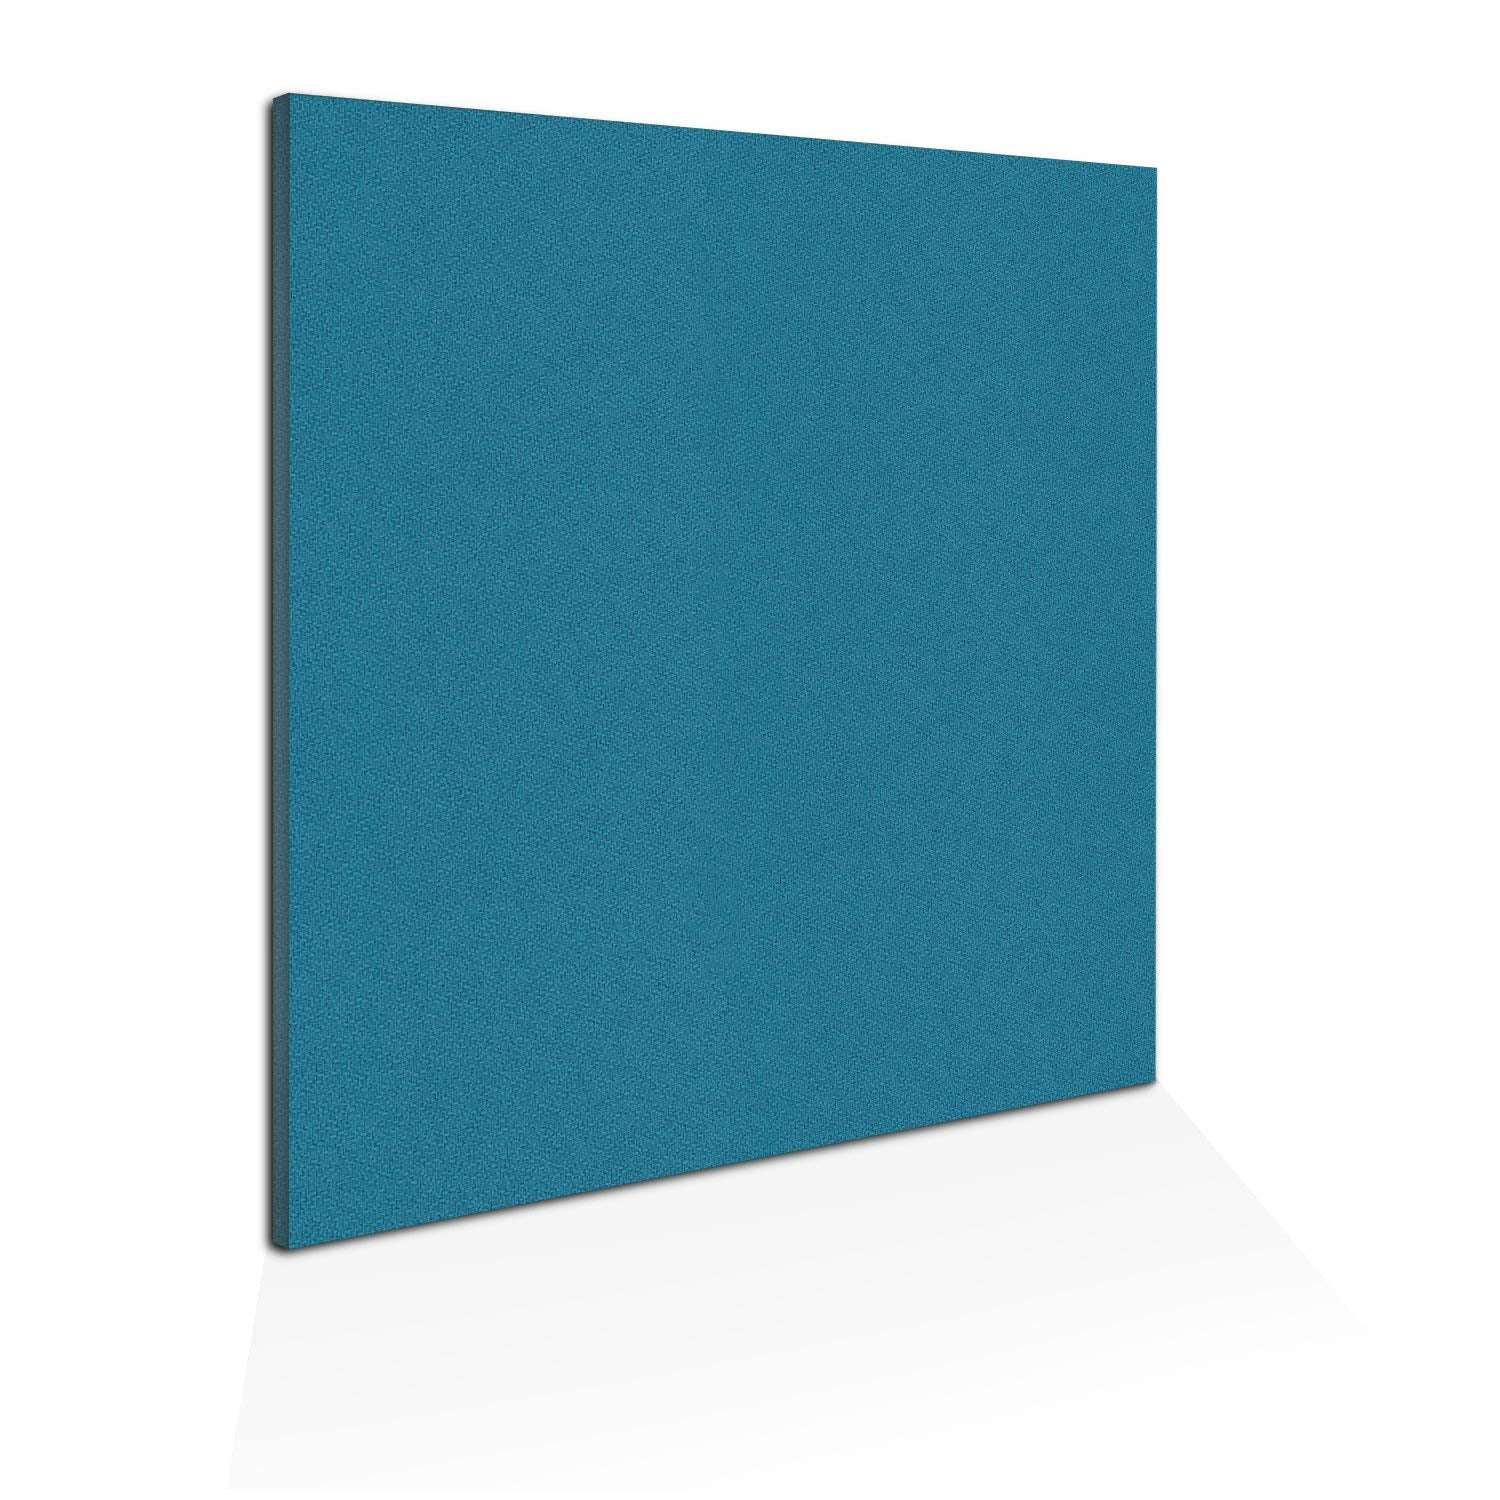 ADW Acoustic Panels Square - 24